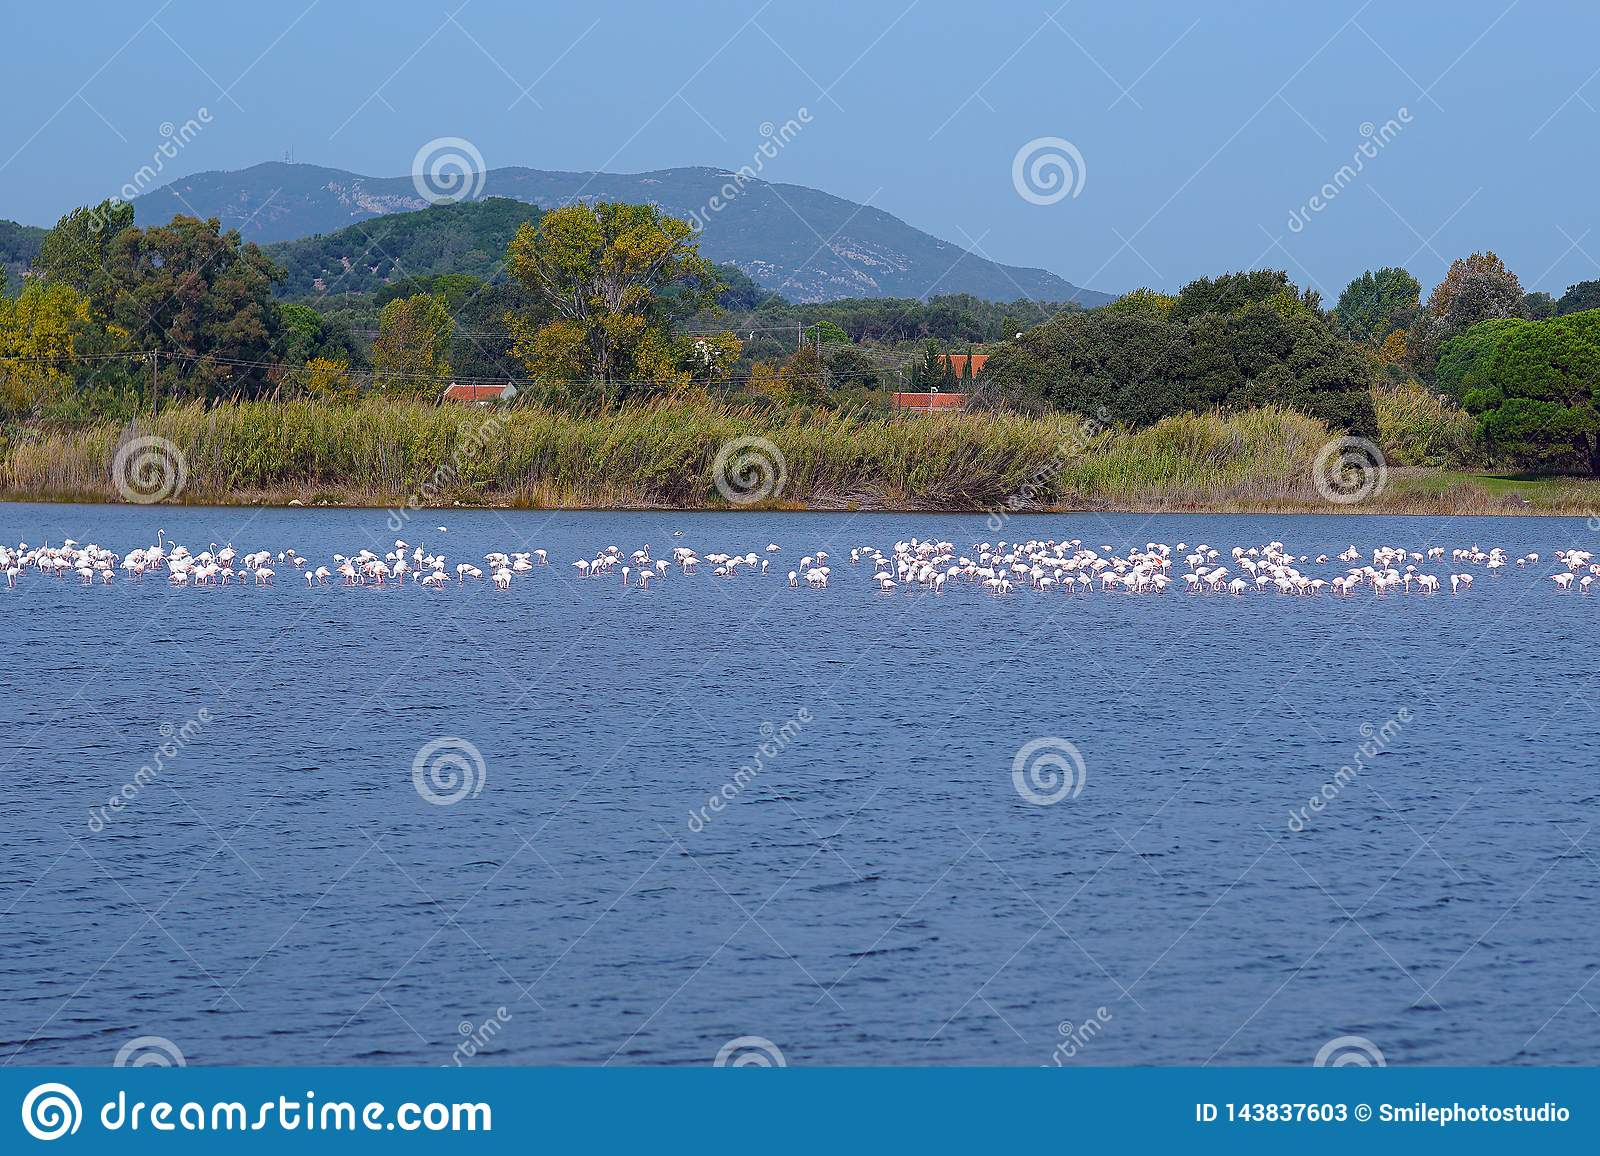 Lake Korission is a very important ecosystem of Corfu, where many migratory birds like pink flamingos stop